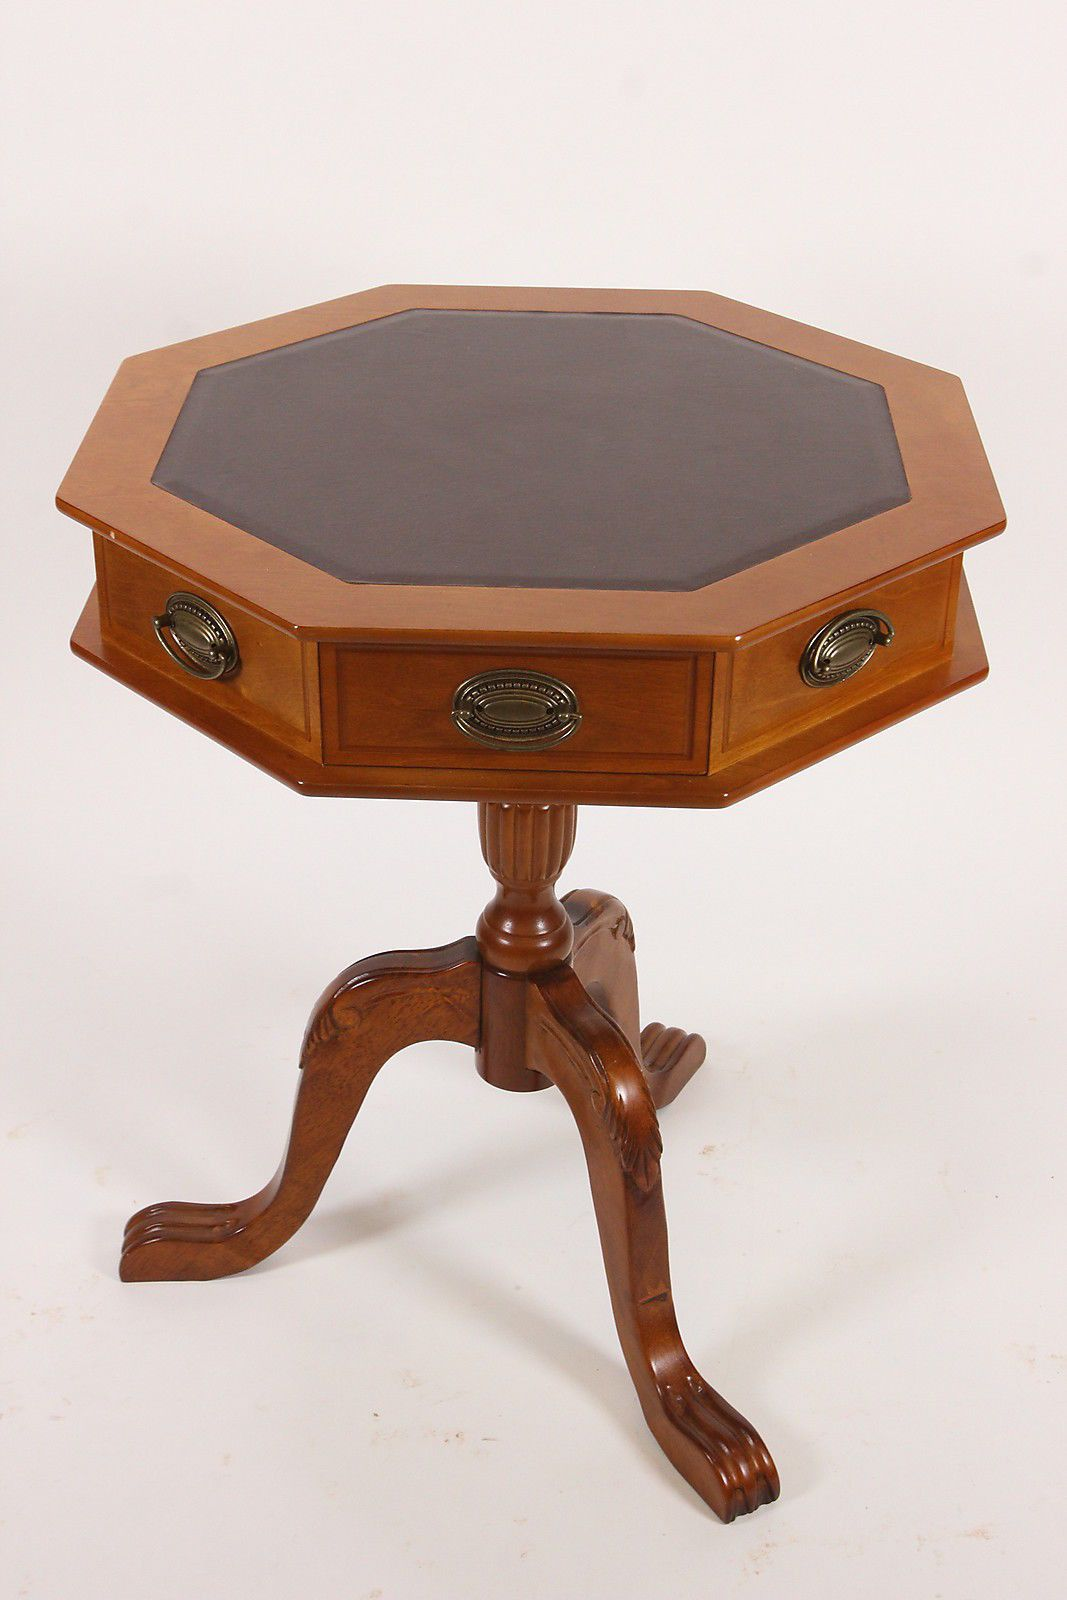 Thomas Pacconi Classics Octagon Table Leather Top 18th Century Reproduction